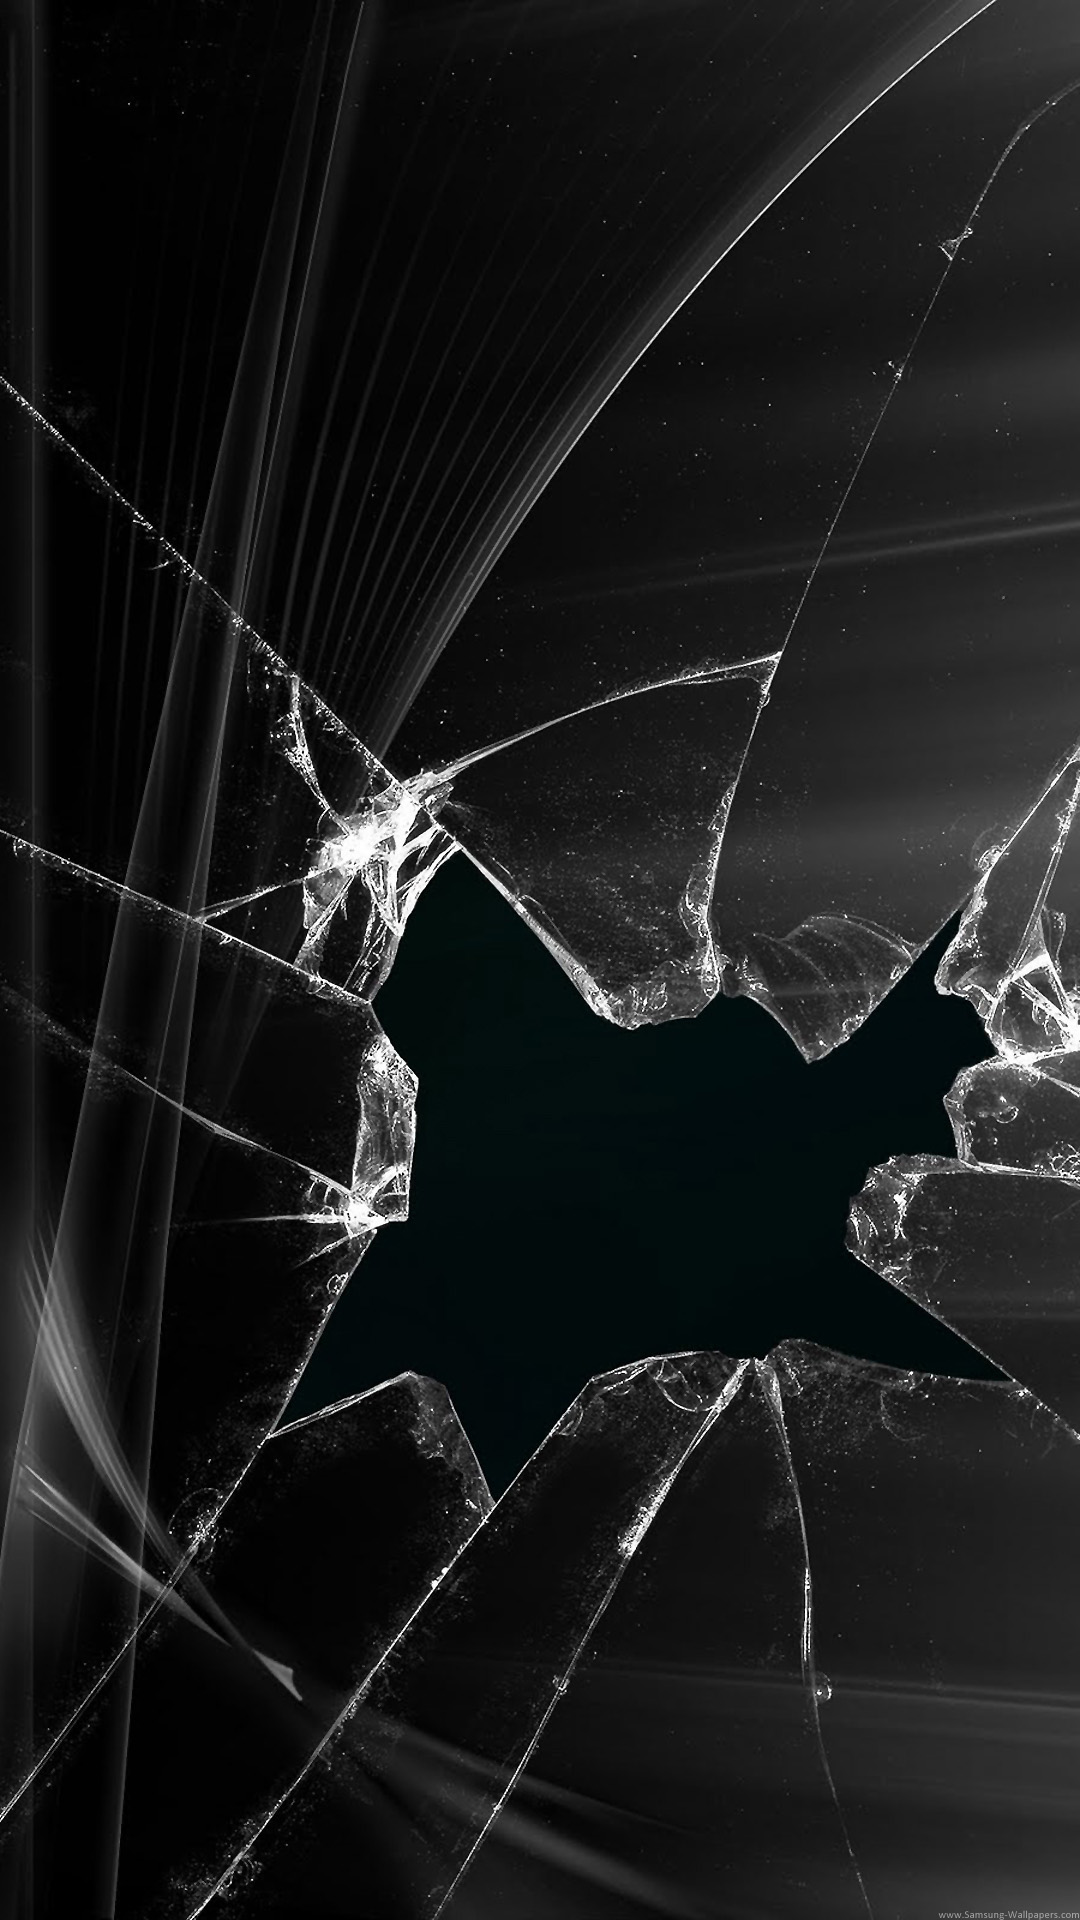 broken-screen-black-abstract-picture-cracked-screen-1080%C3%971920-wallpaper-wpc9203240